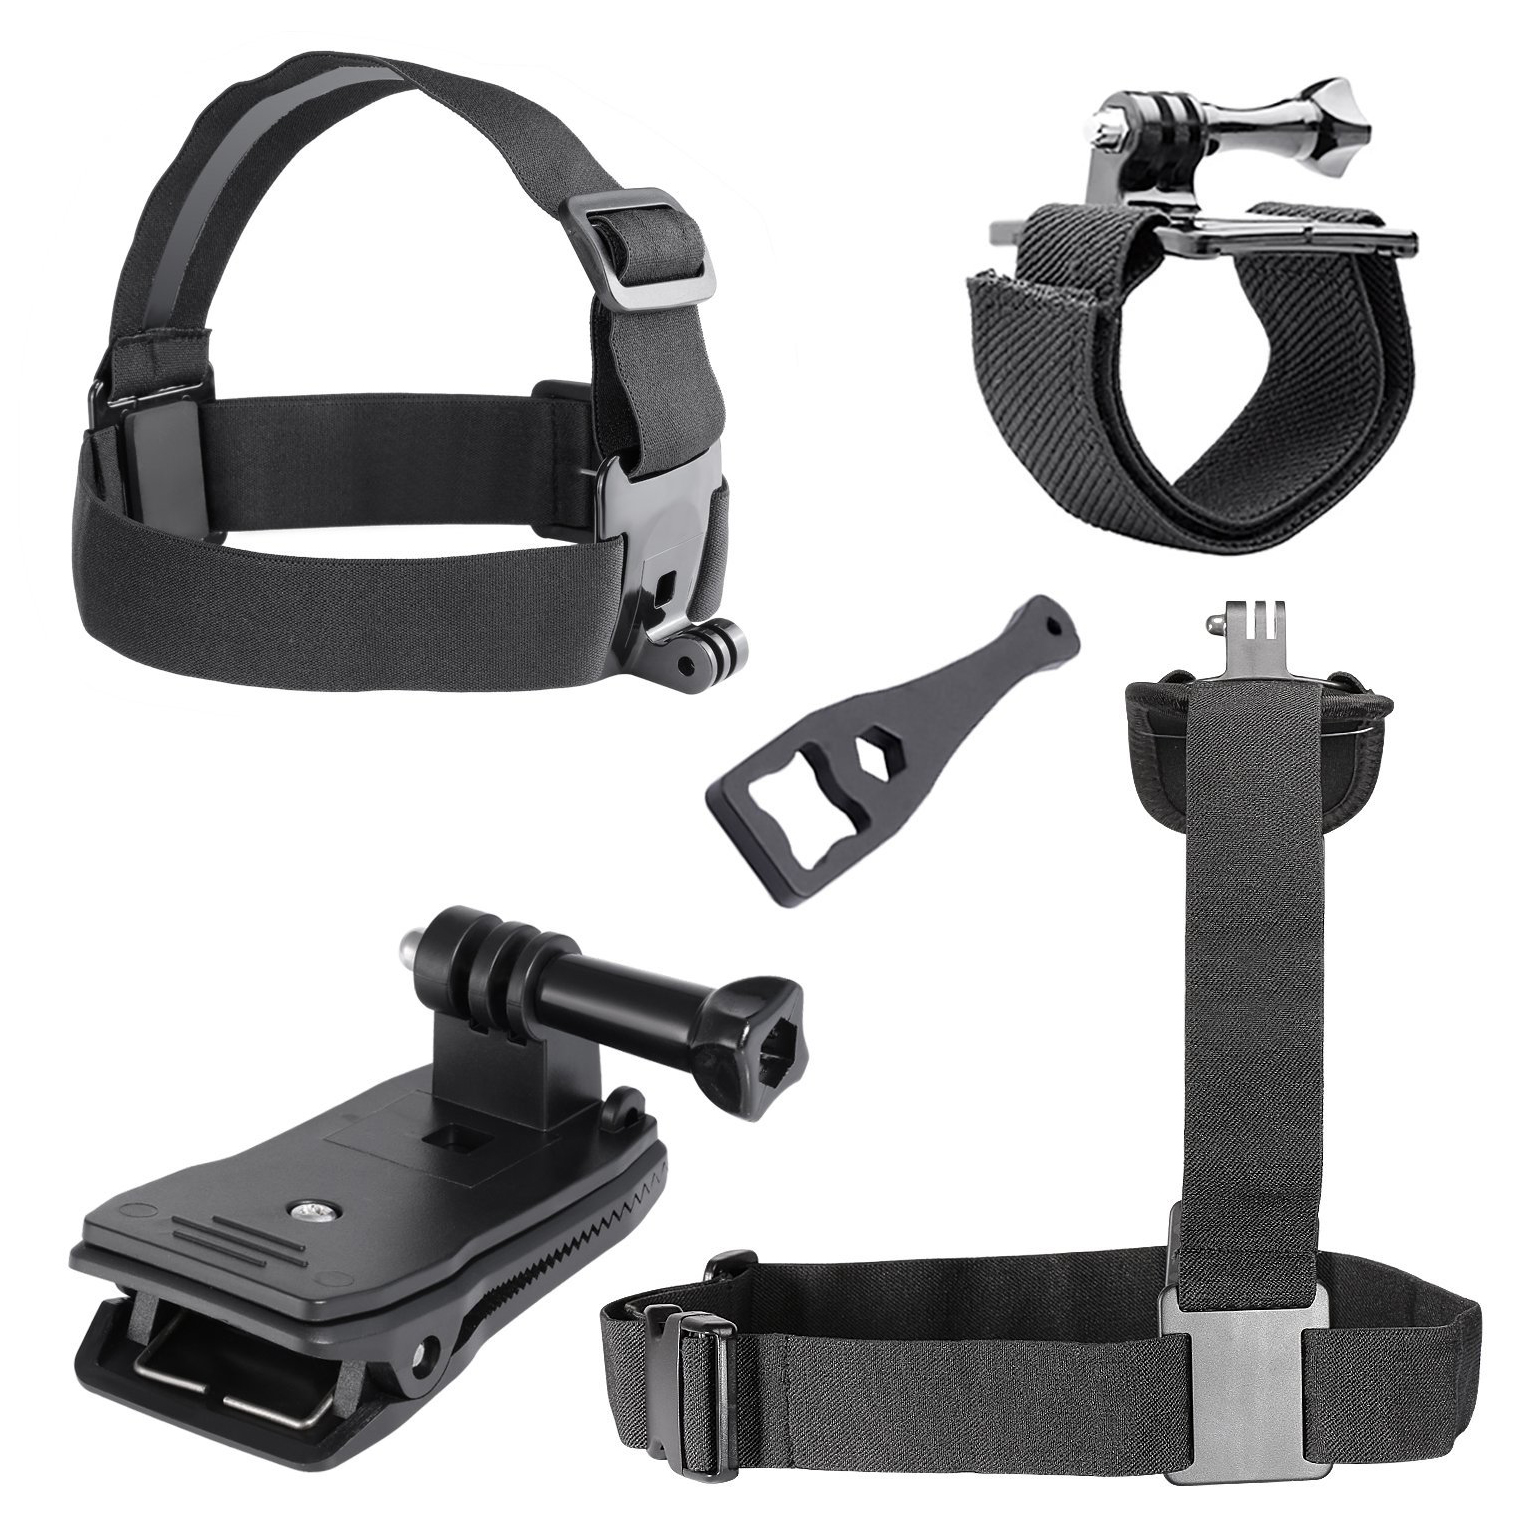 6-in-1 game External sports indispensable accessories for Gopro Hero4 Hero 1 2 3 3+SJ400 ...